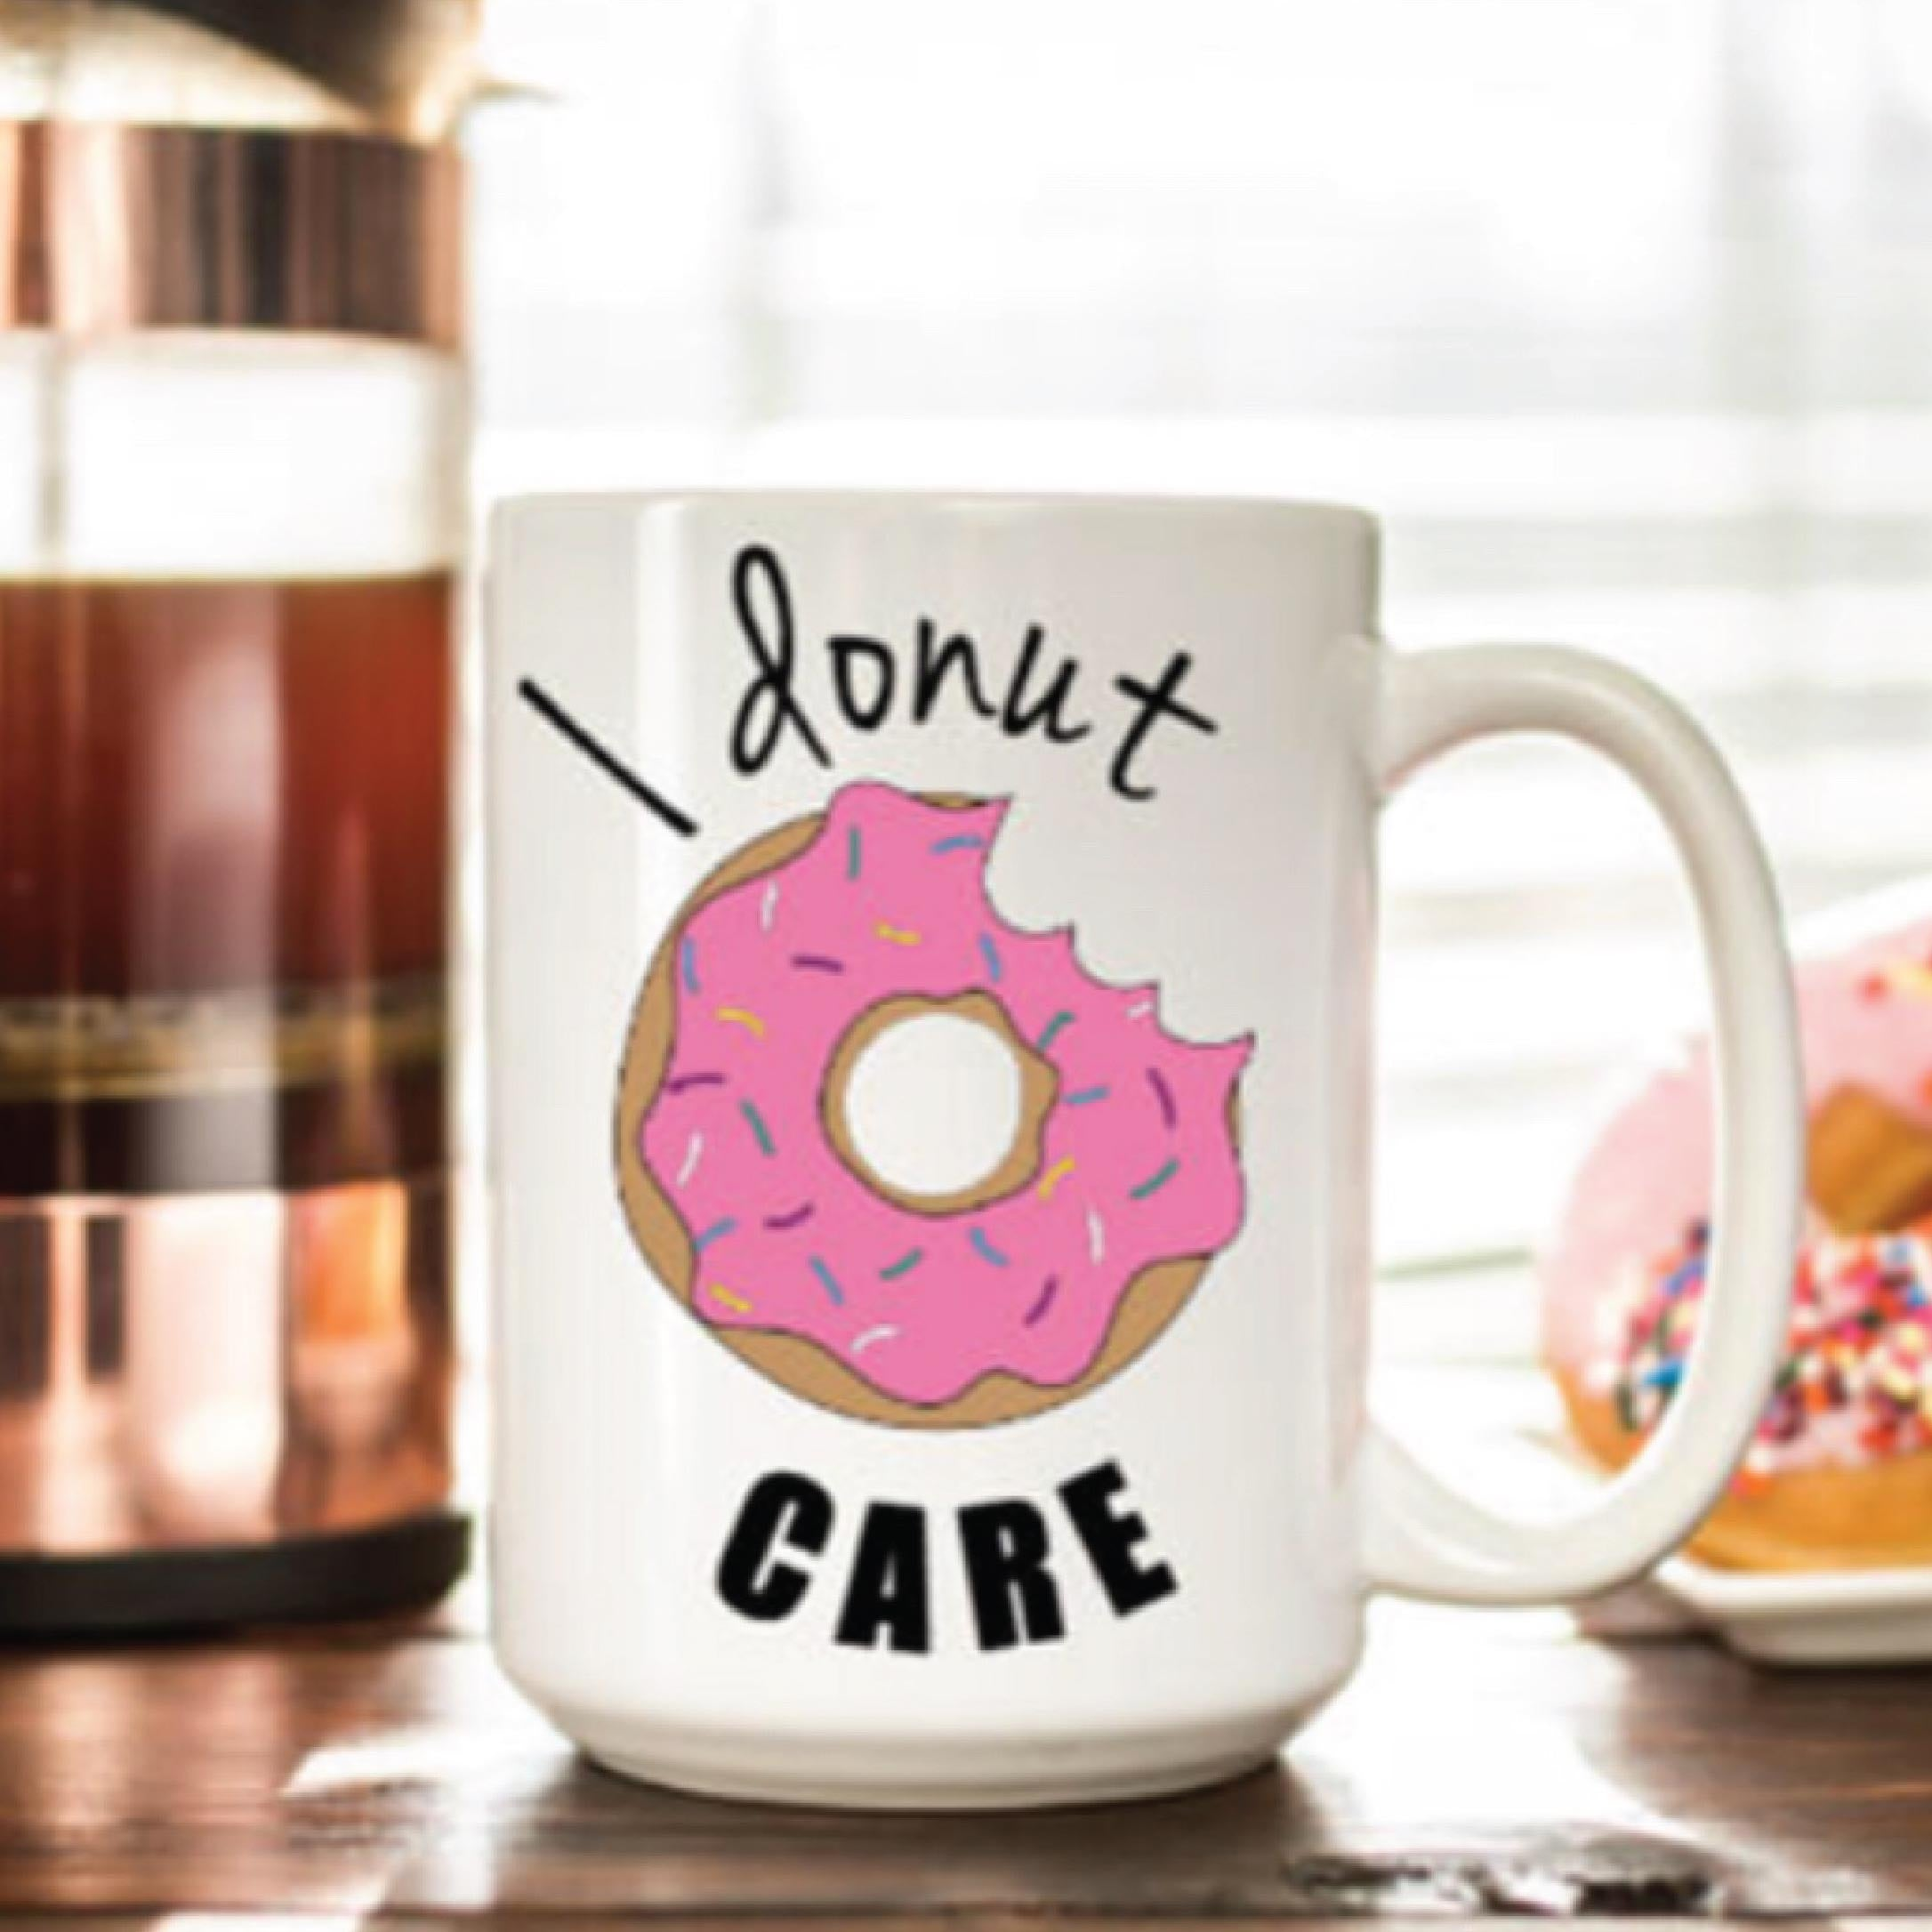 I donut care mug and pink donut